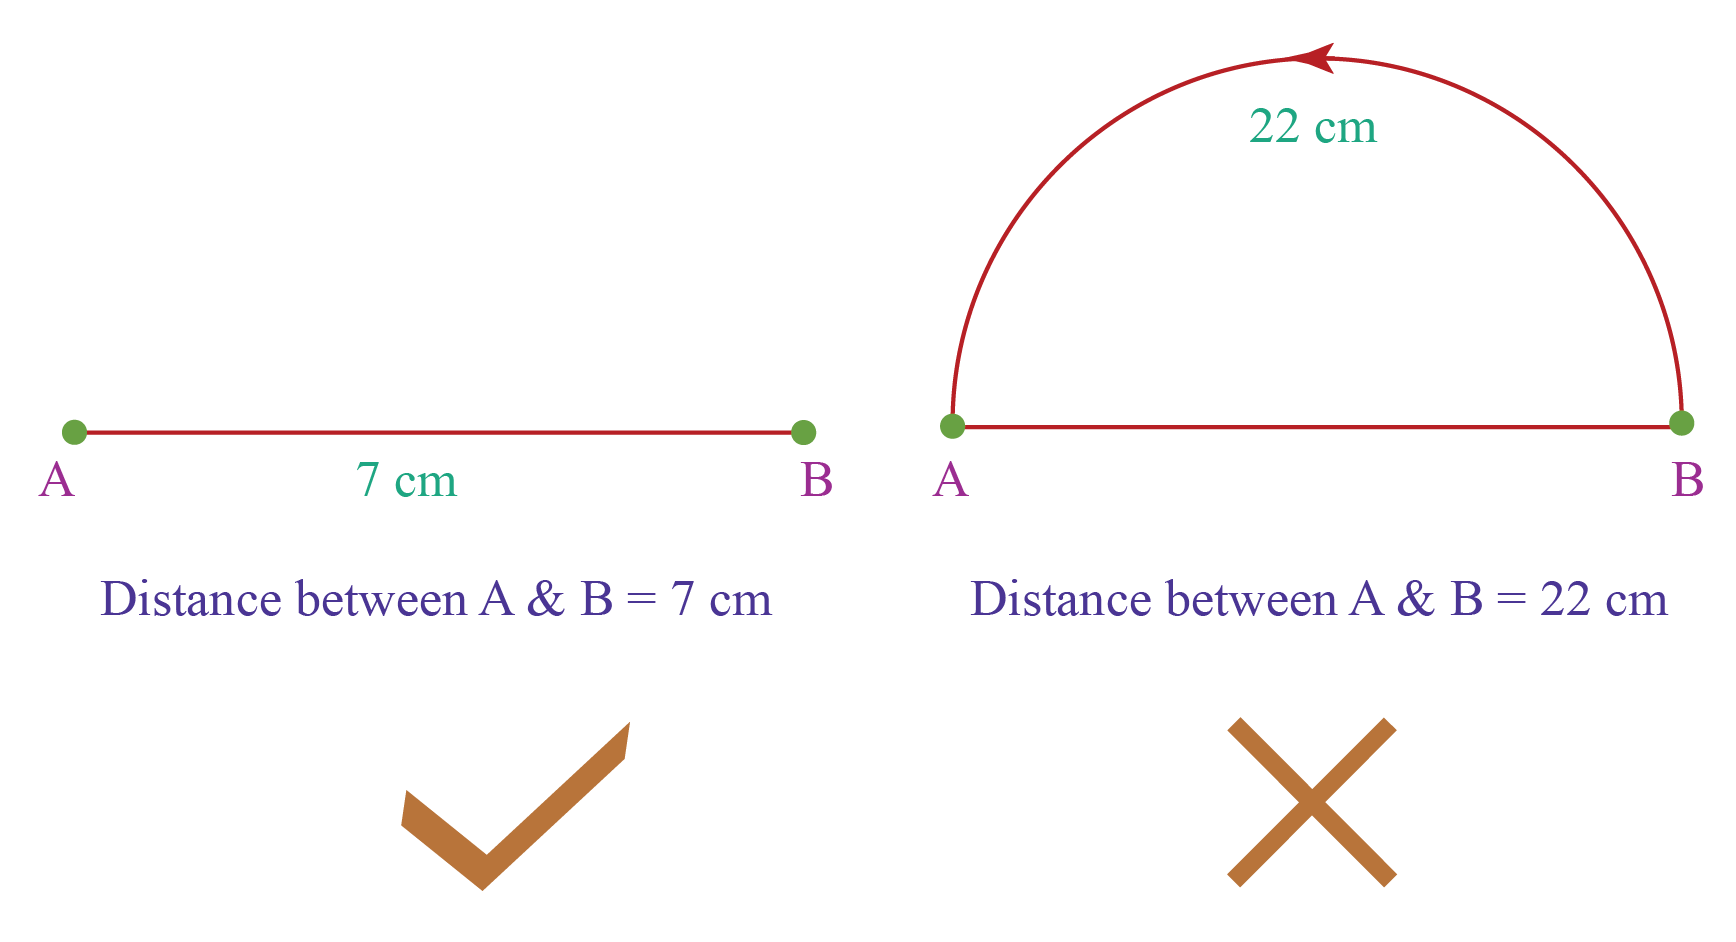 The definition of the distance between two points is explained using a line segment of length 7 cm and a semi-circle with circumference 22 cm.